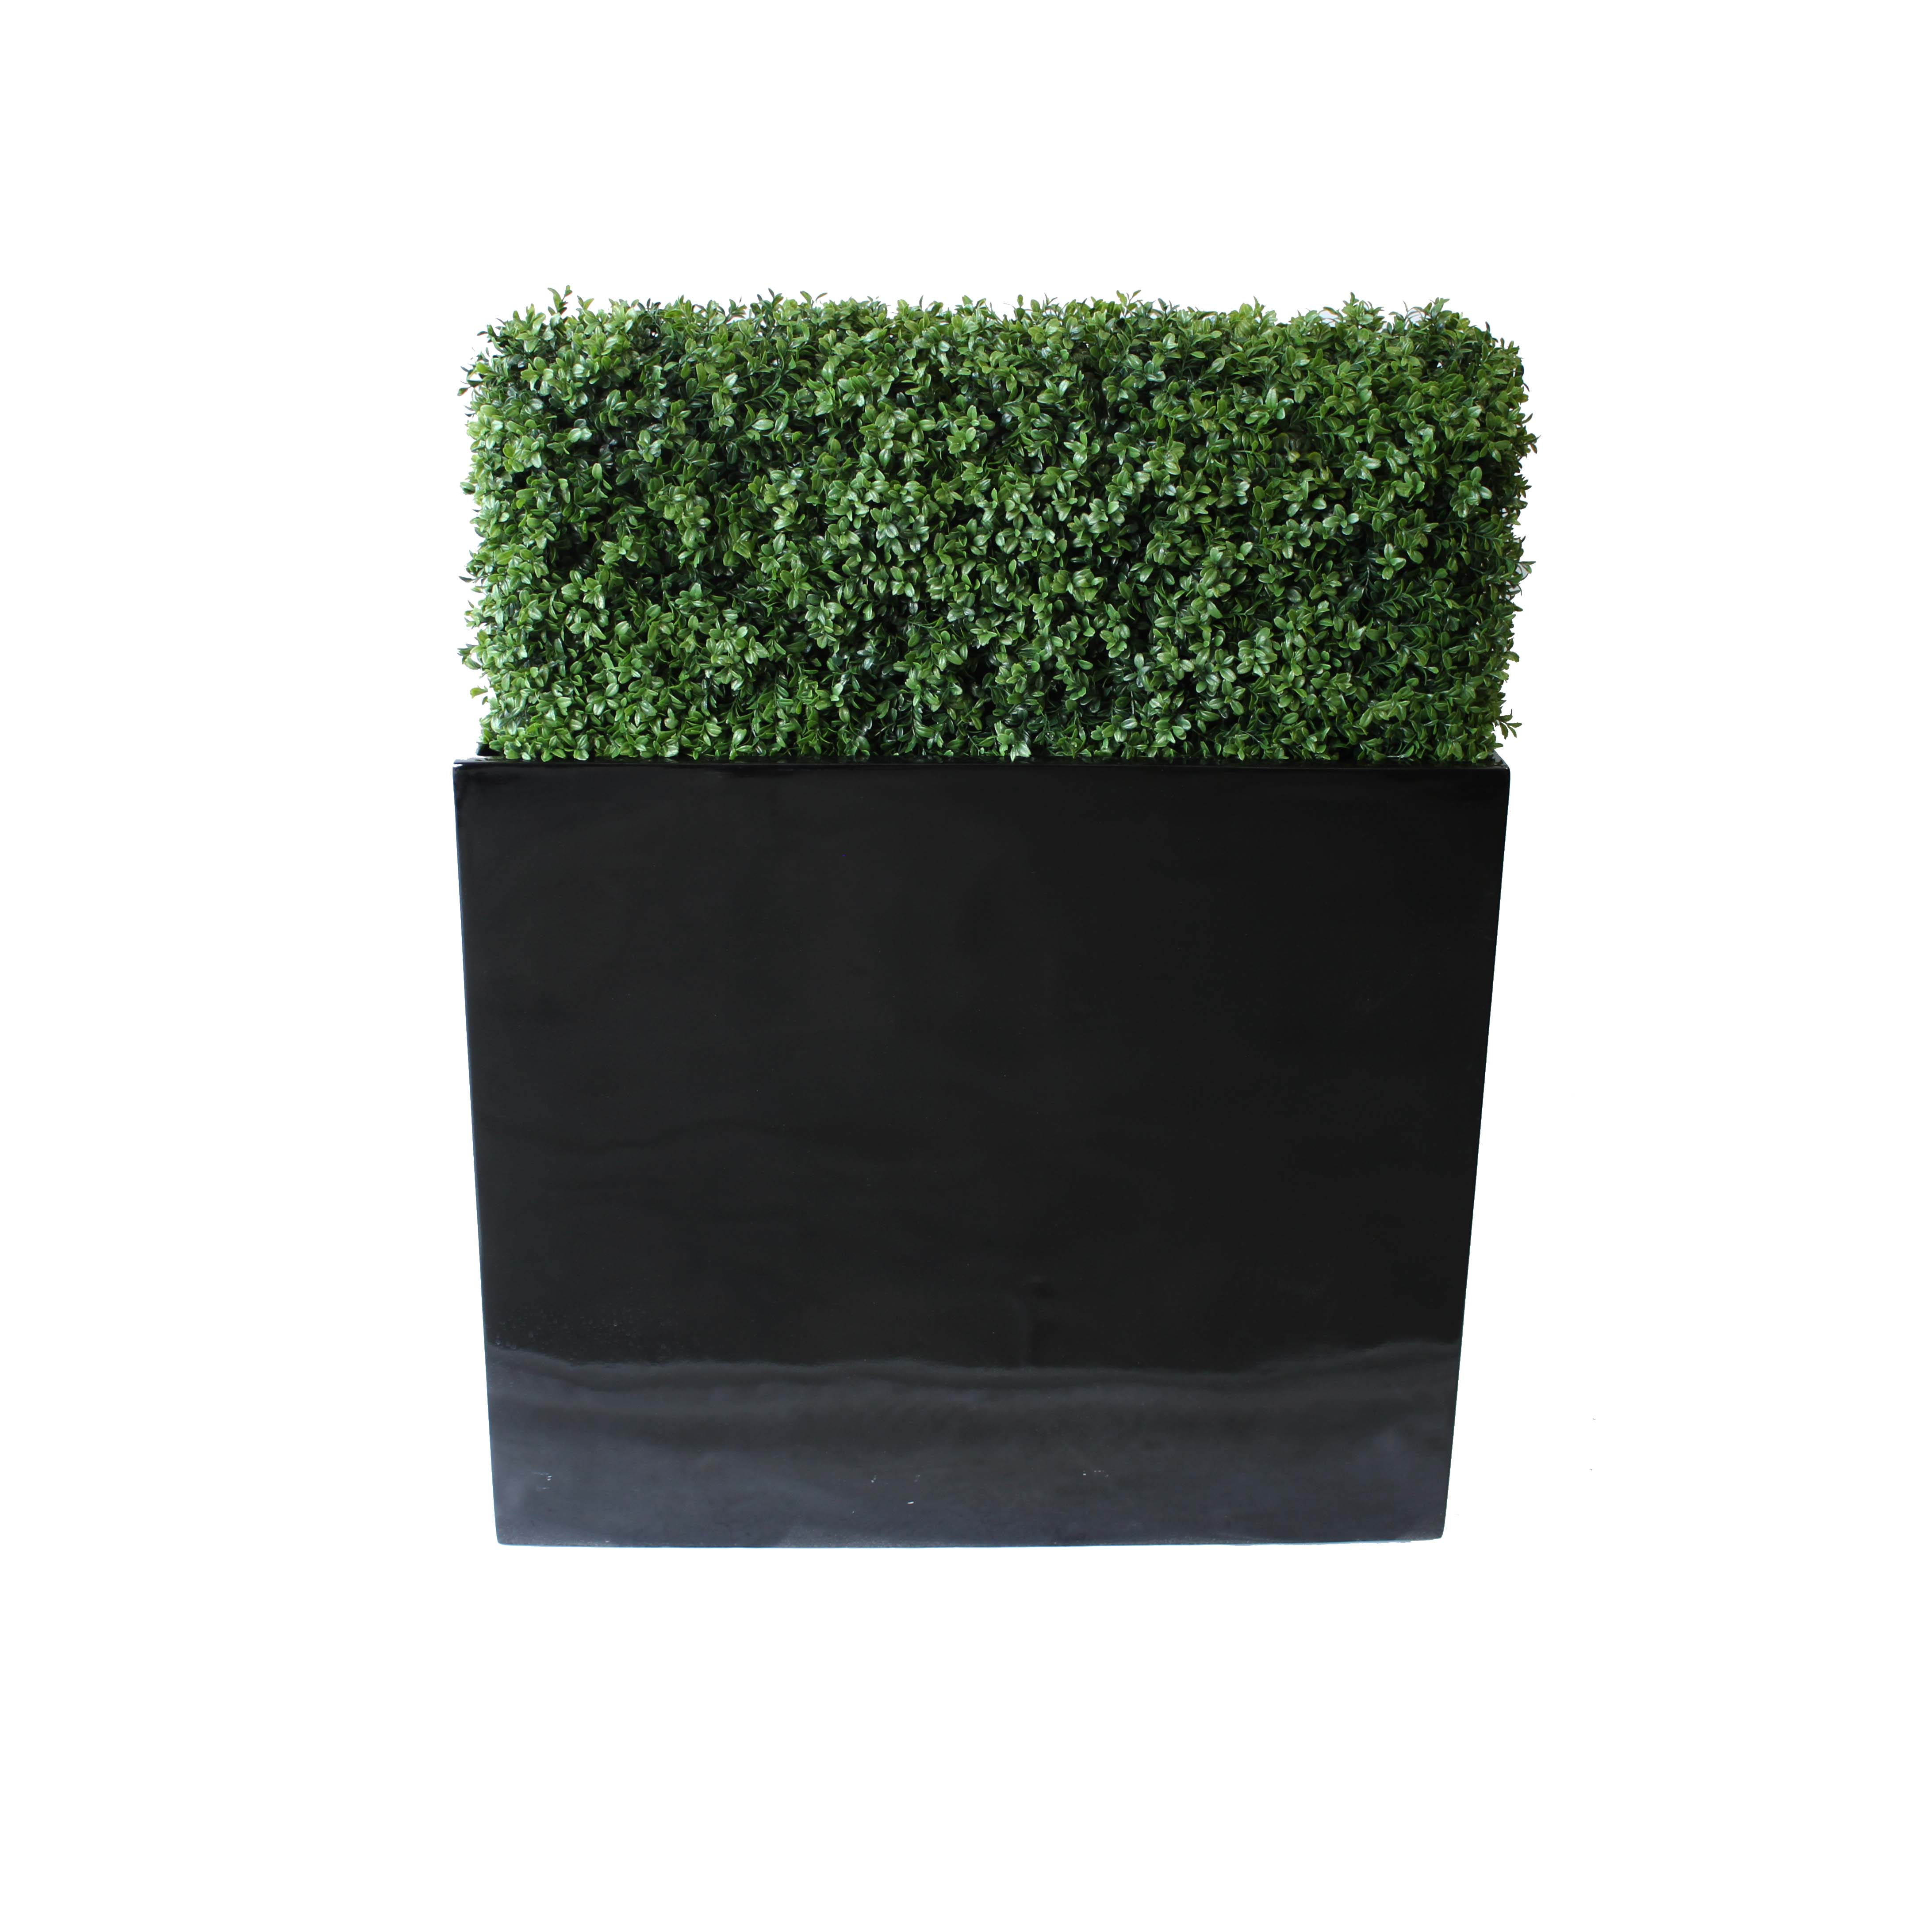 PREMIUM DELUXE BOXWOOD HEDGE 90 WIDE X 95CM TALL WITH FIBREGLASS TROUGH